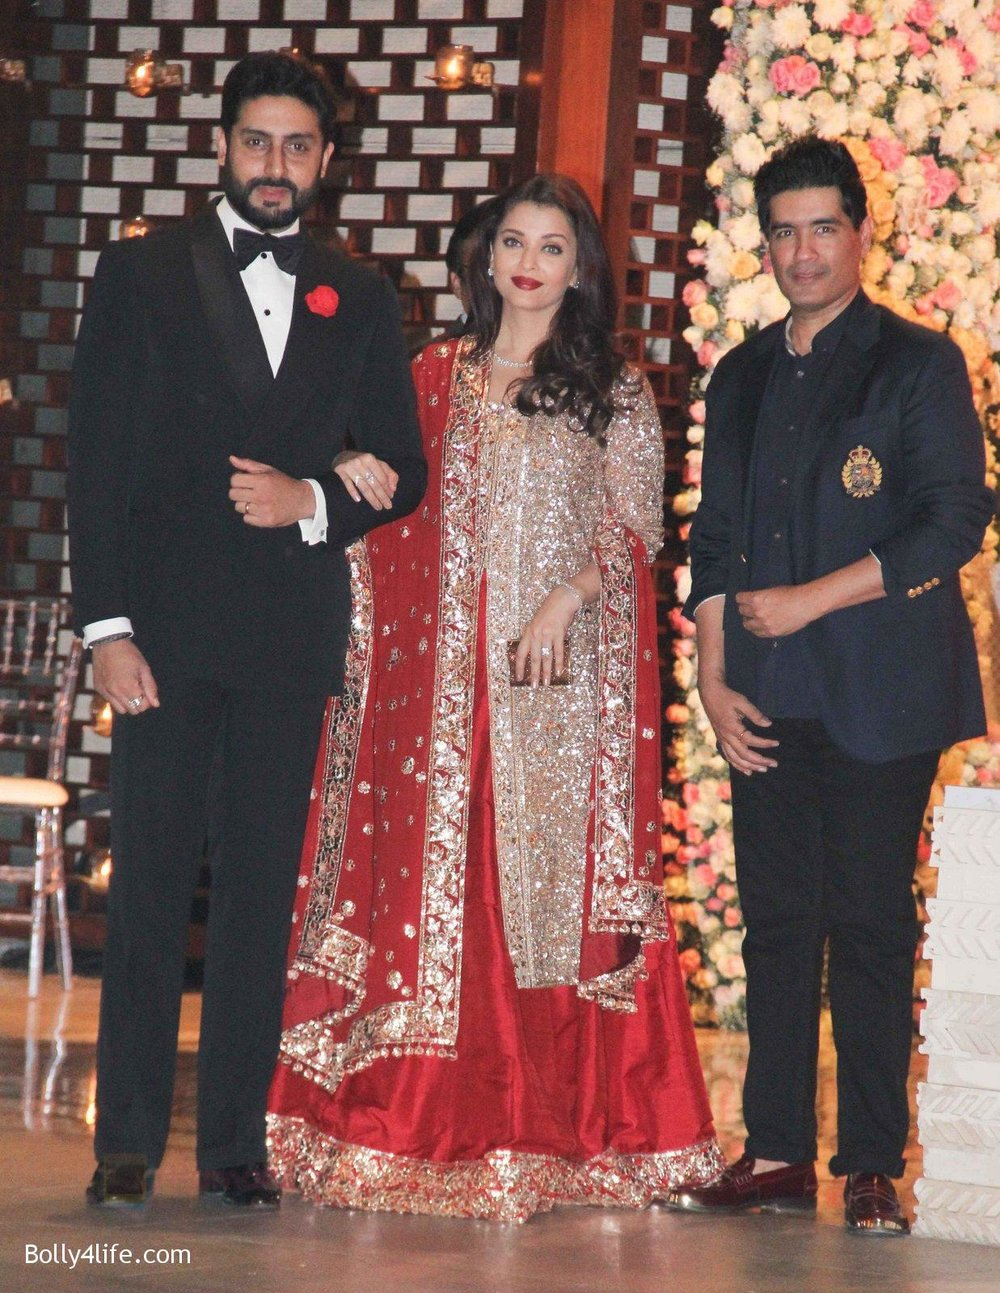 Aishwarya-Rai-Bachchan-Abhishek-Bachchan-at-the-Ambanis-wedding-party-of-their-niece-Isheta-Salgaoncar.jpg